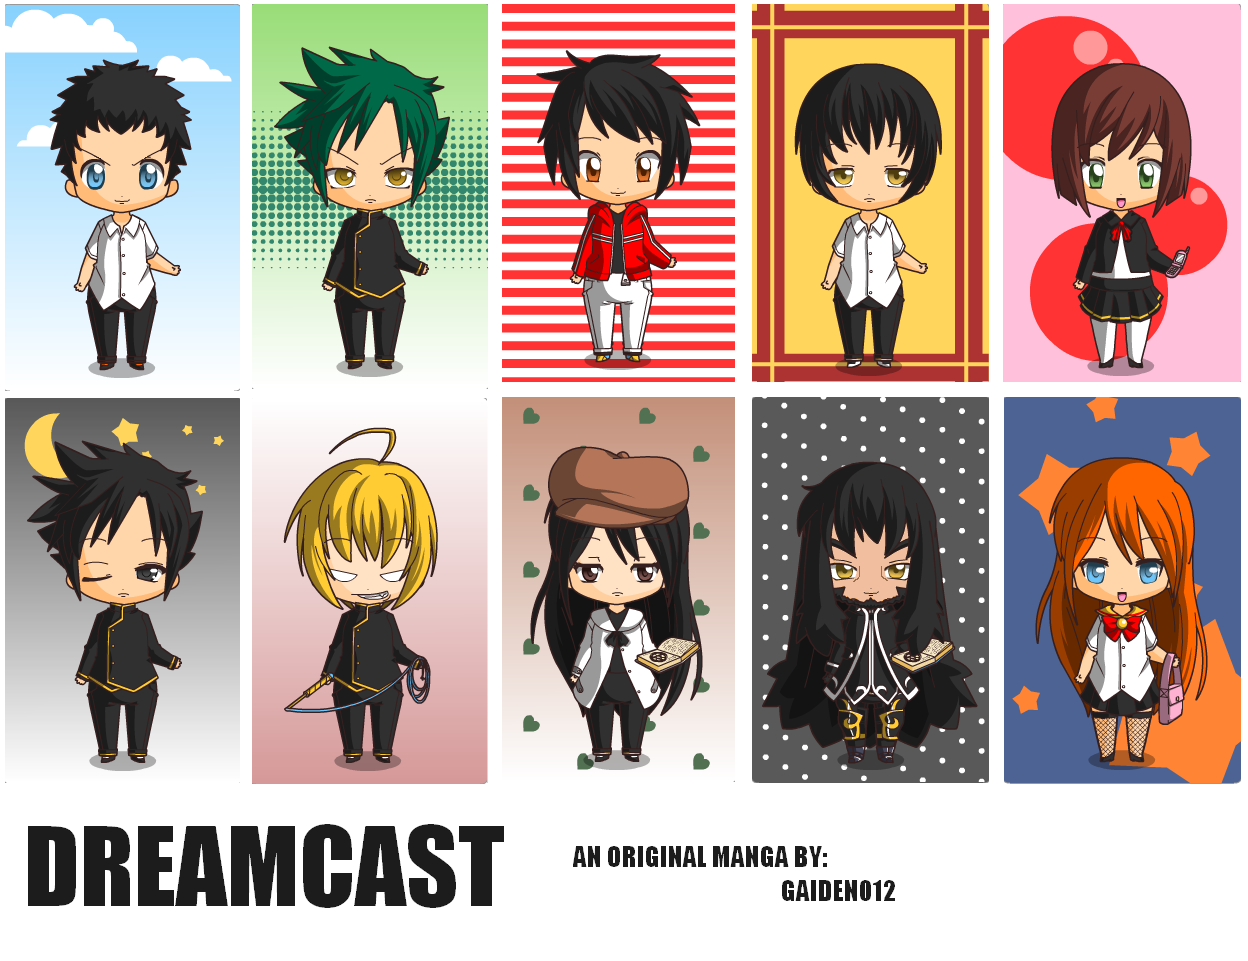 Anime Characters Born On June 8 : Dreamcast characters main by gaiden on deviantart